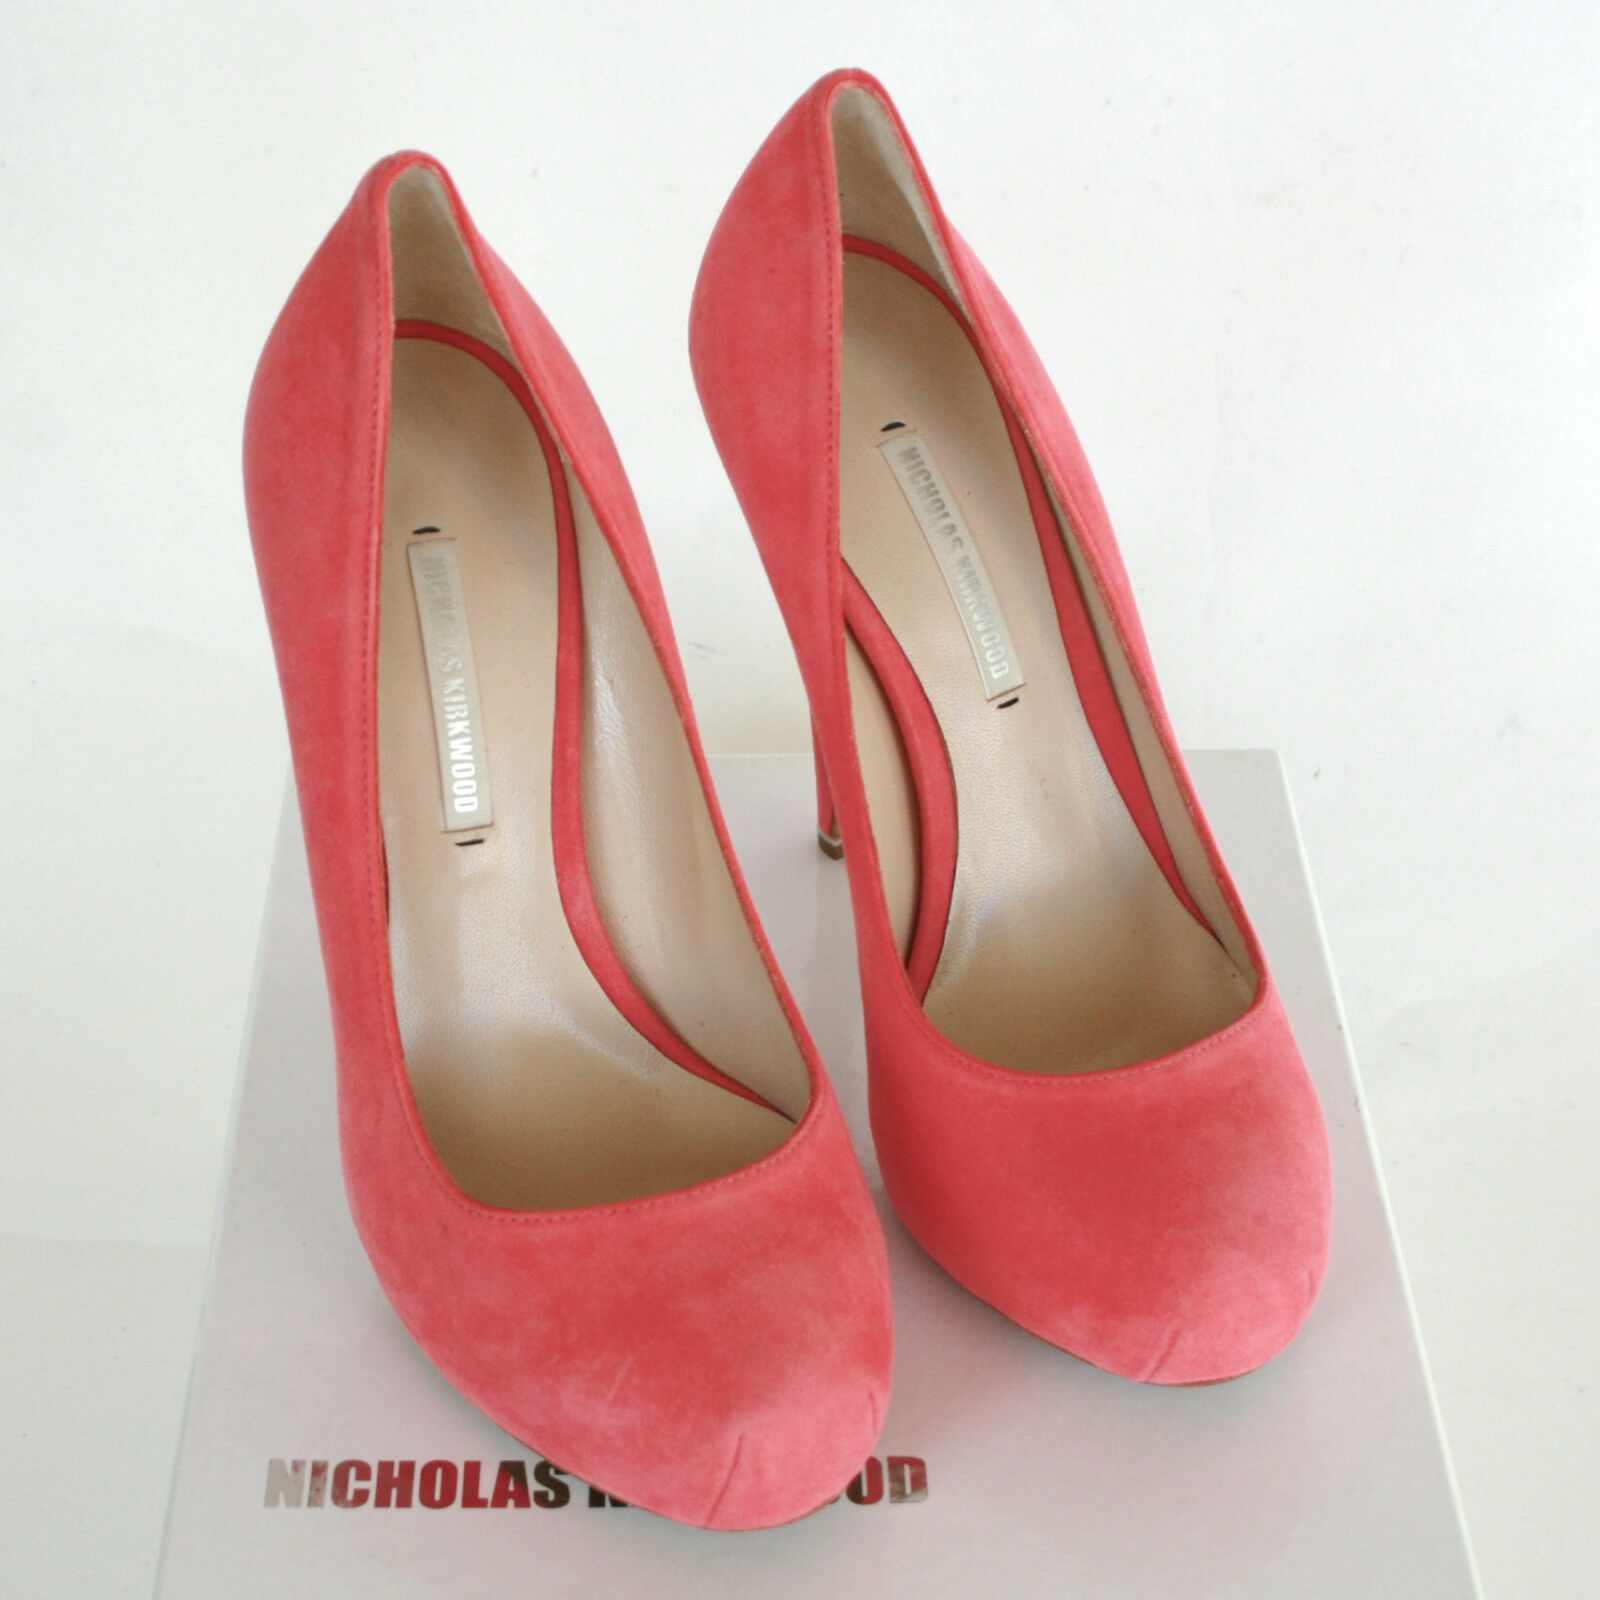 NICHOLAS KIRKWOOD 695 strawberry pumps pink suede high heel pumps strawberry schuhe 35 / 5 NEW c9f742